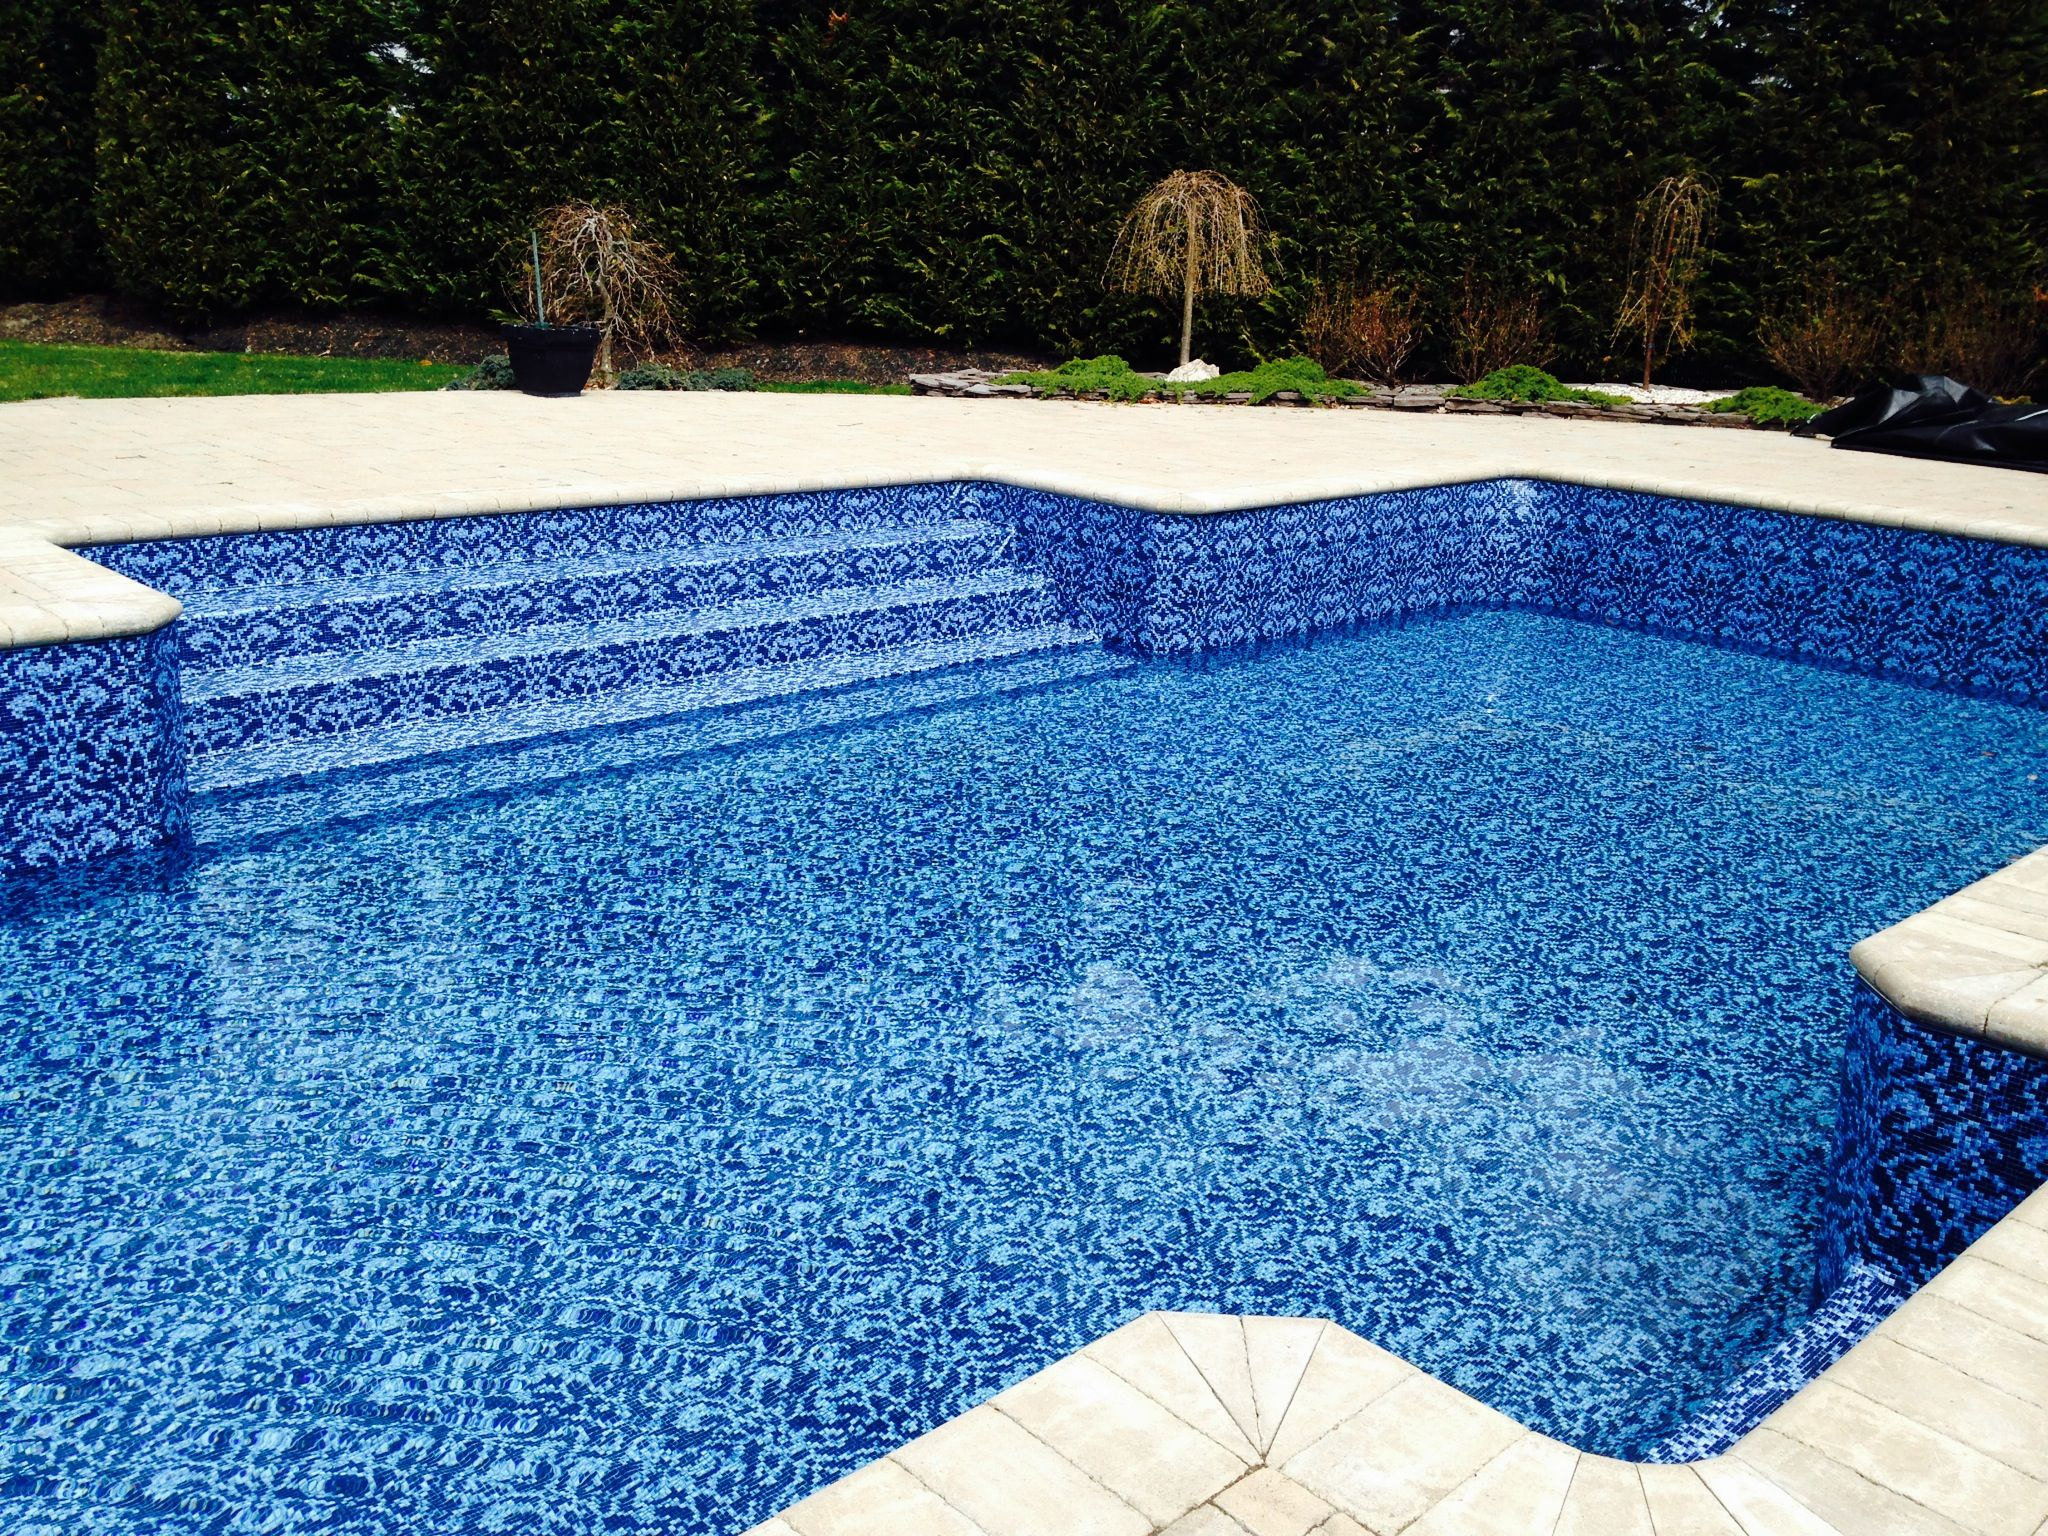 Bella Vista Pool Liner Amazing Pool Liners Pinterest Pool Liners And Pool Designs